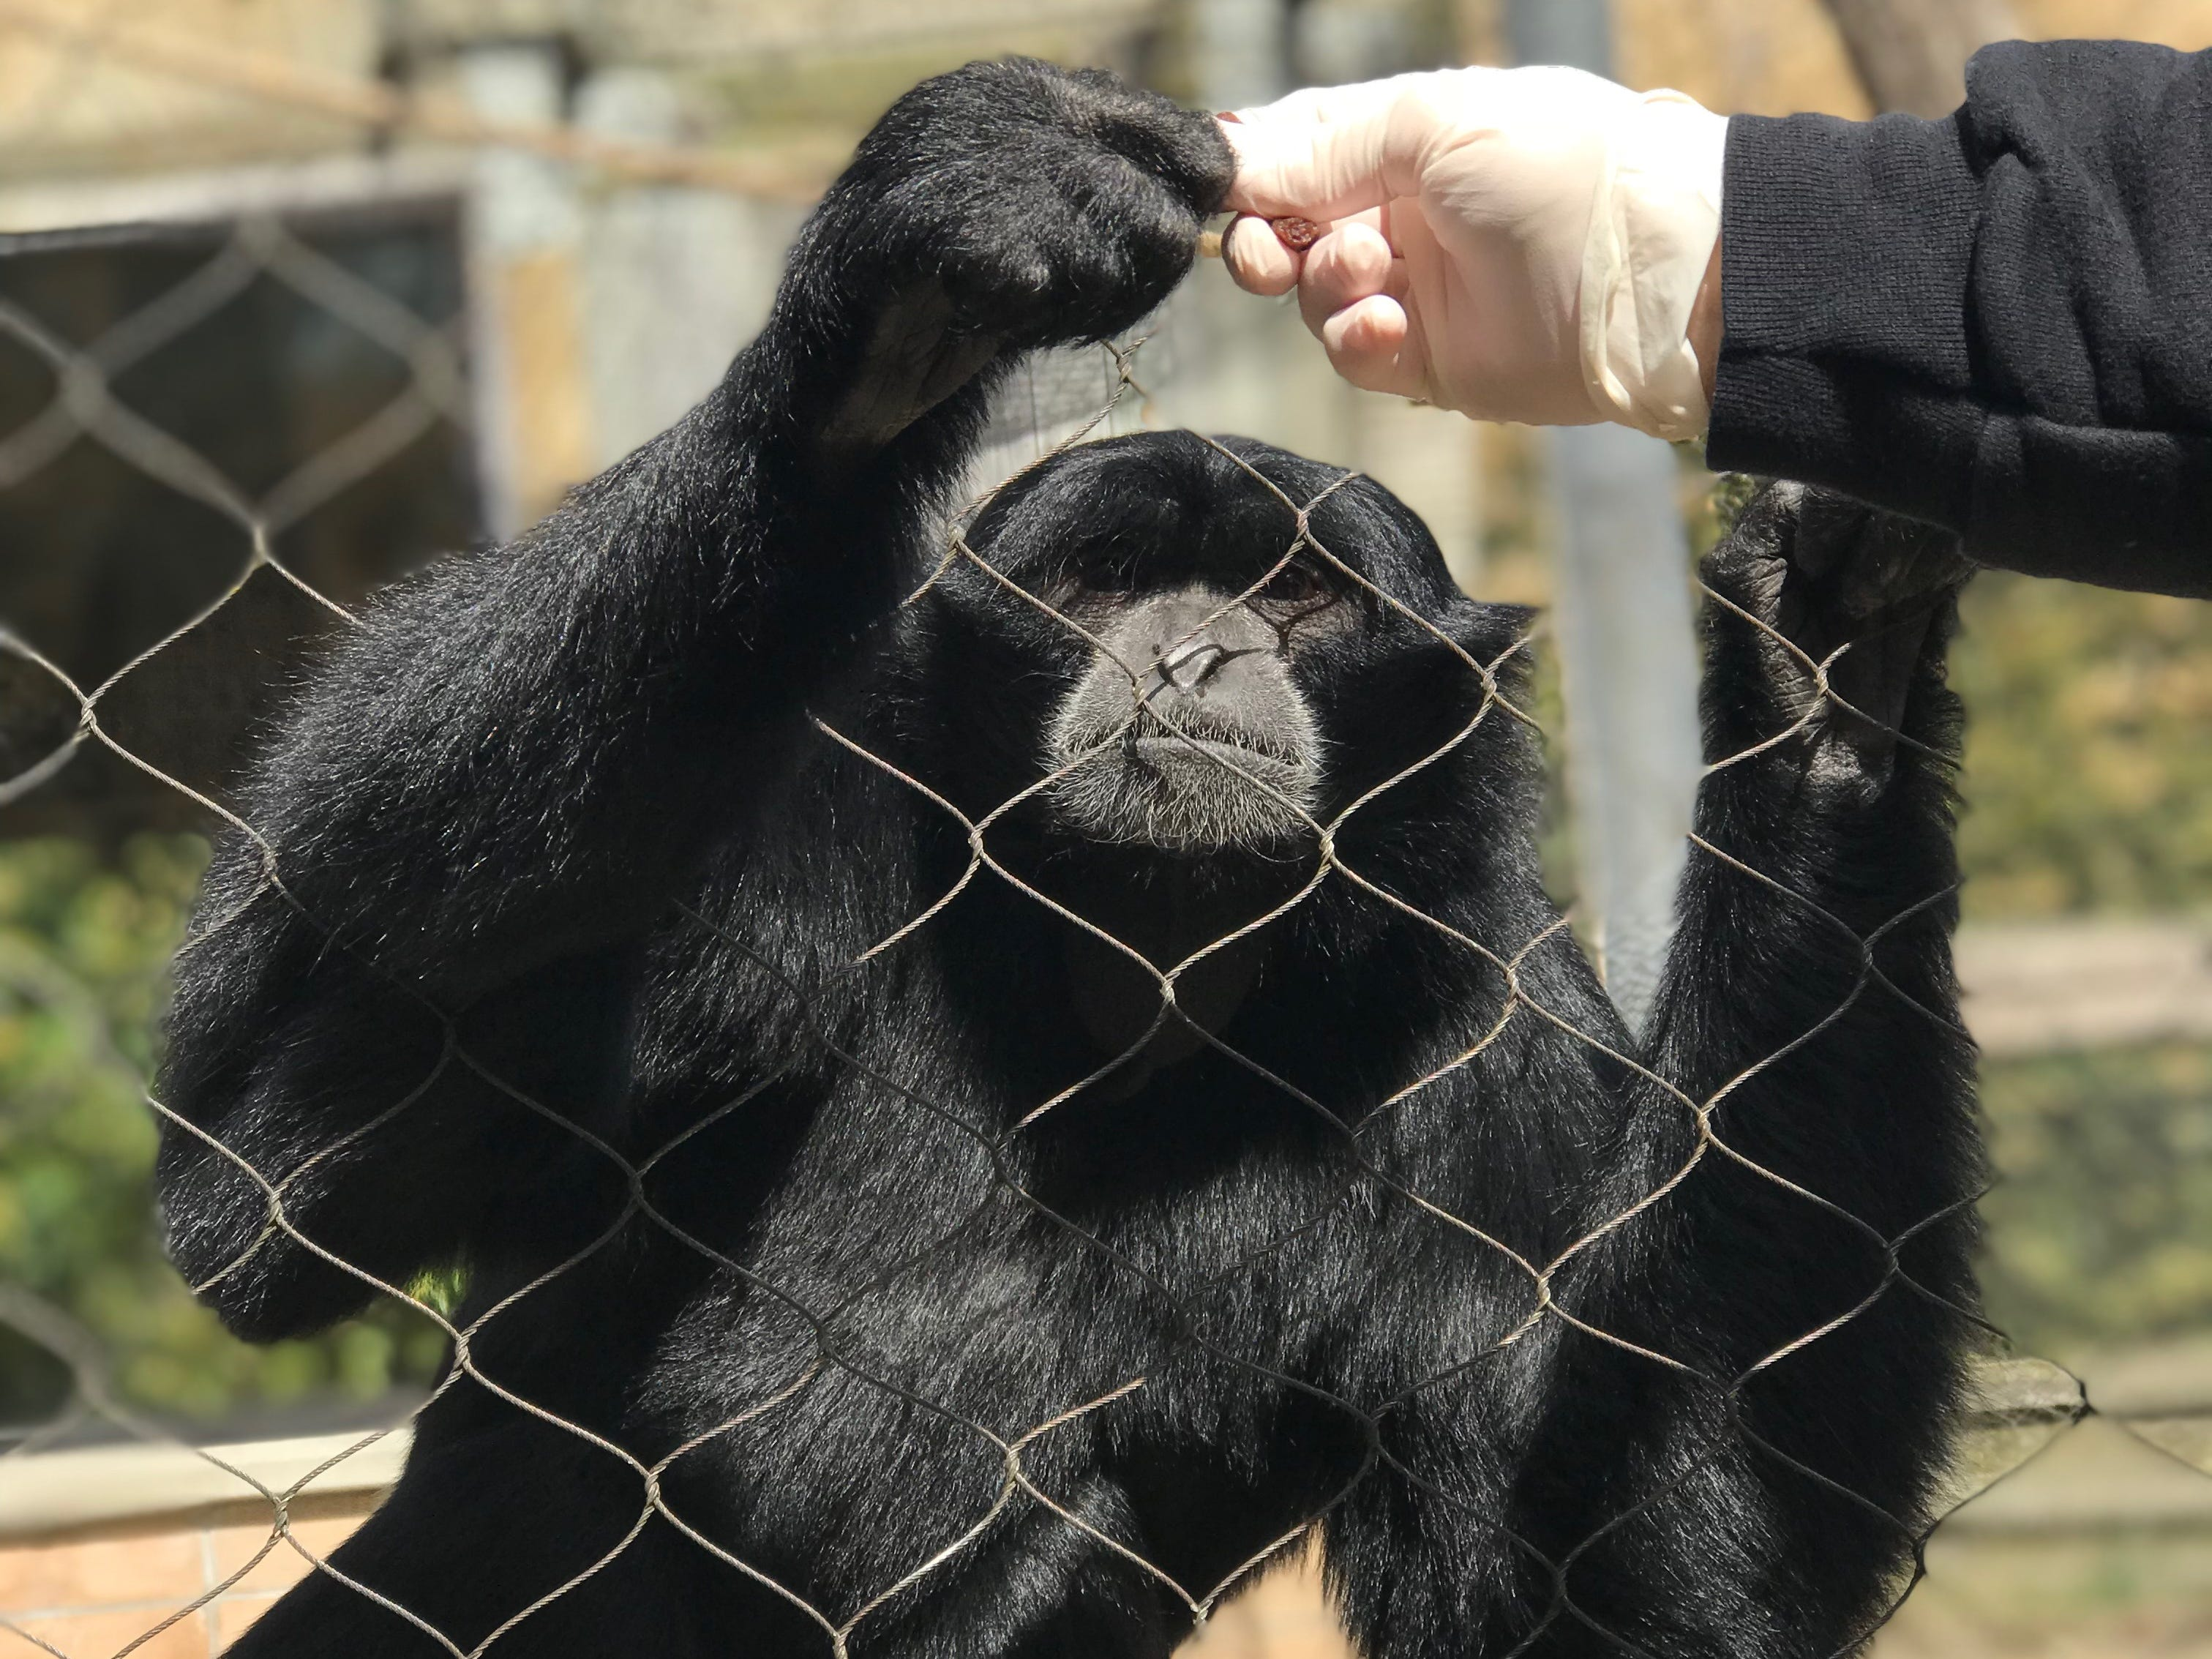 Ape, 'sweetest gibbon,' dies Friday at Dickerson Park Zoo